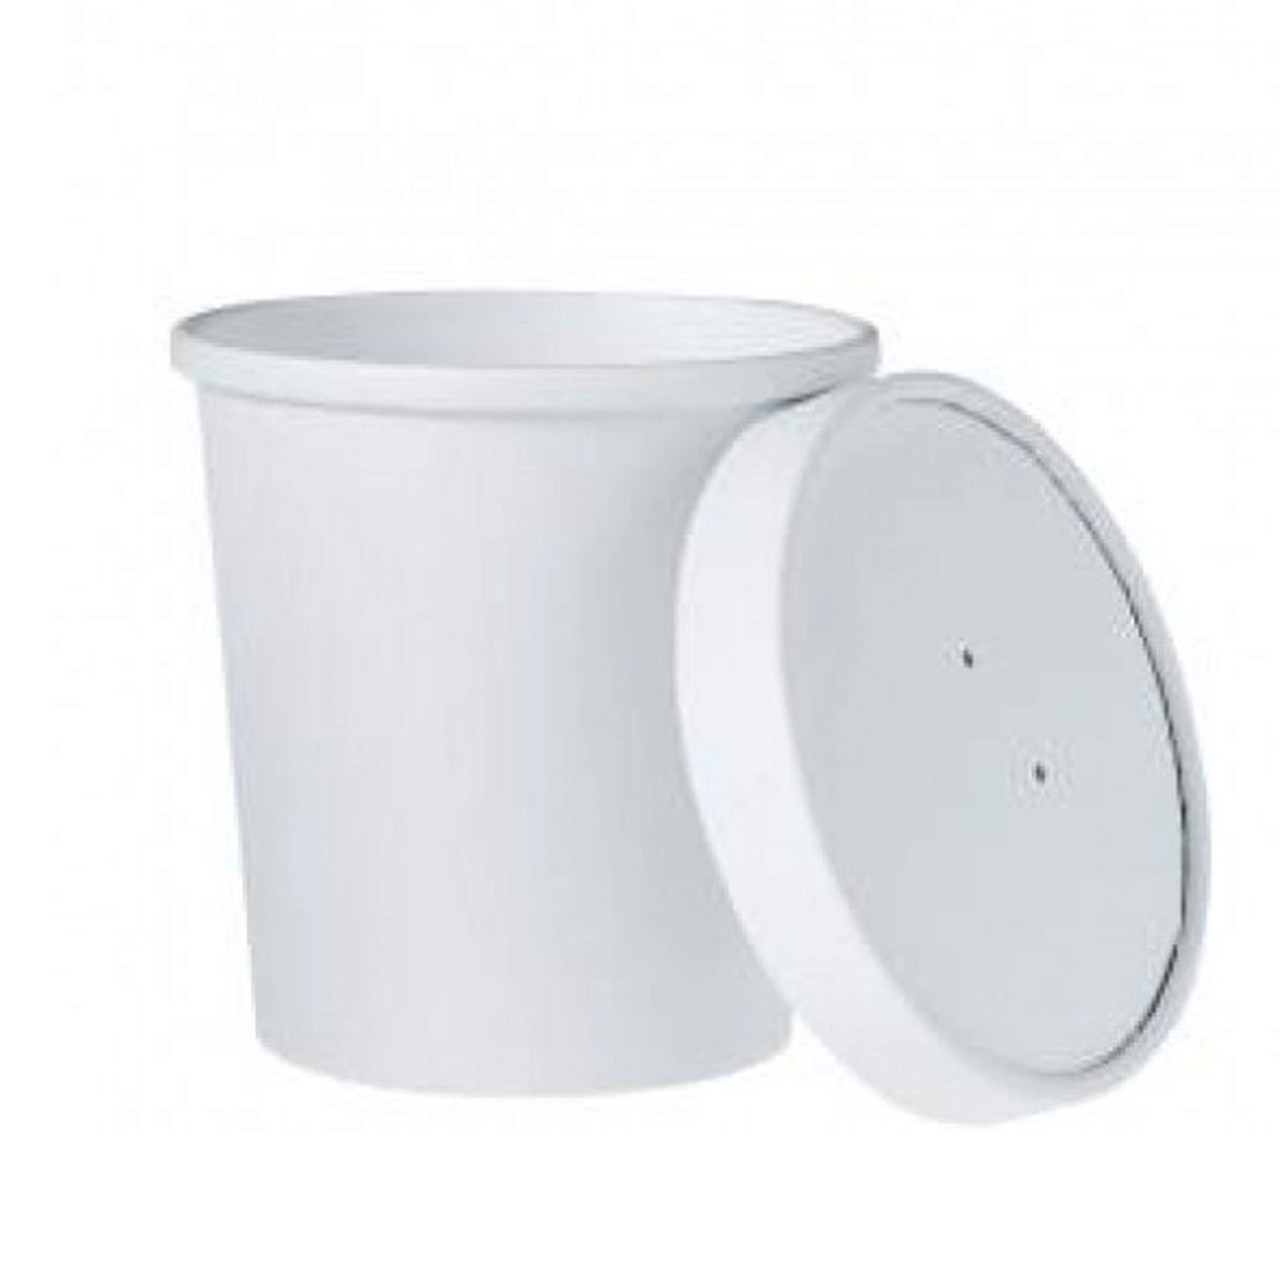 White Ice Cream / Soup Container with Paper Lid - 16oz - Case of 250